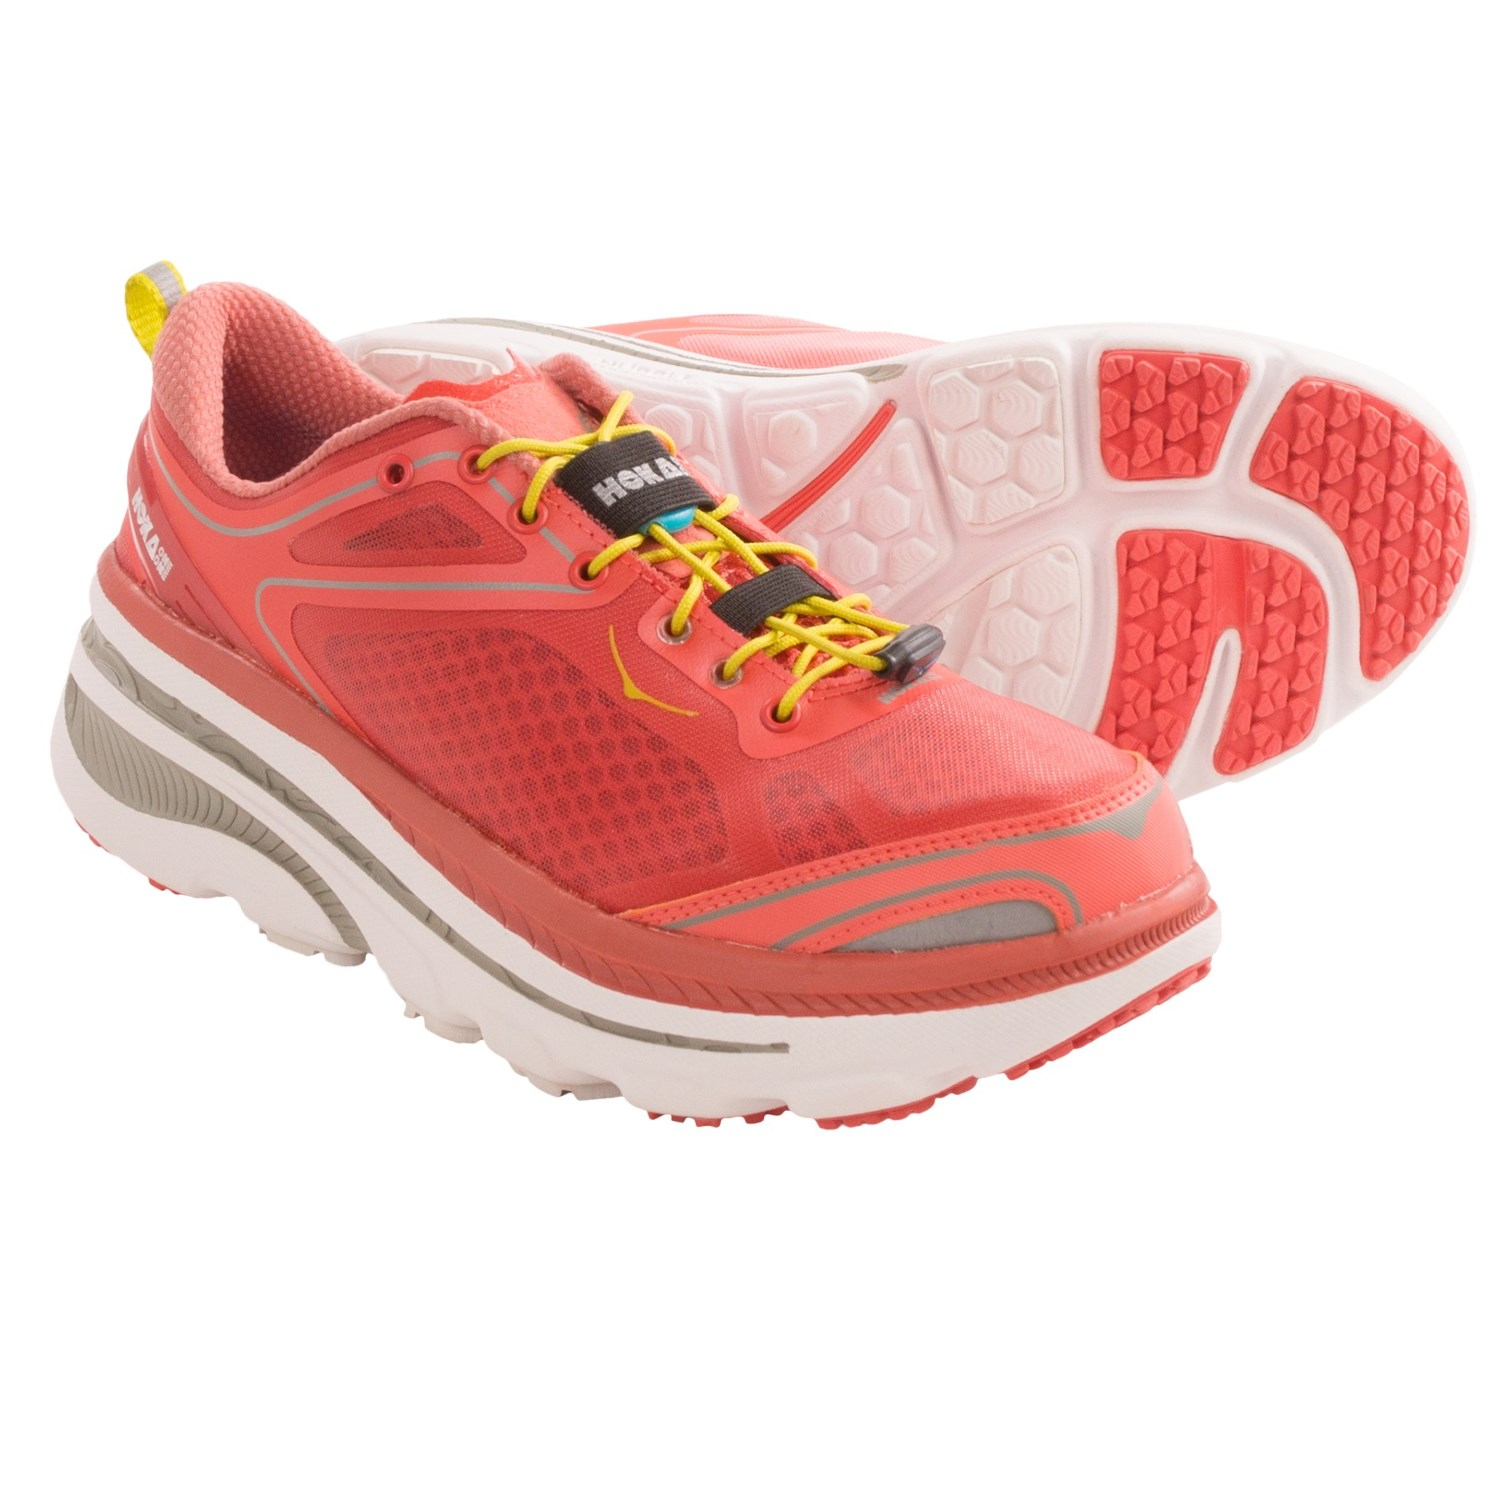 Neutral Running Shoes Women ~ Hoka One One Bondi 3 Road Running Shoes